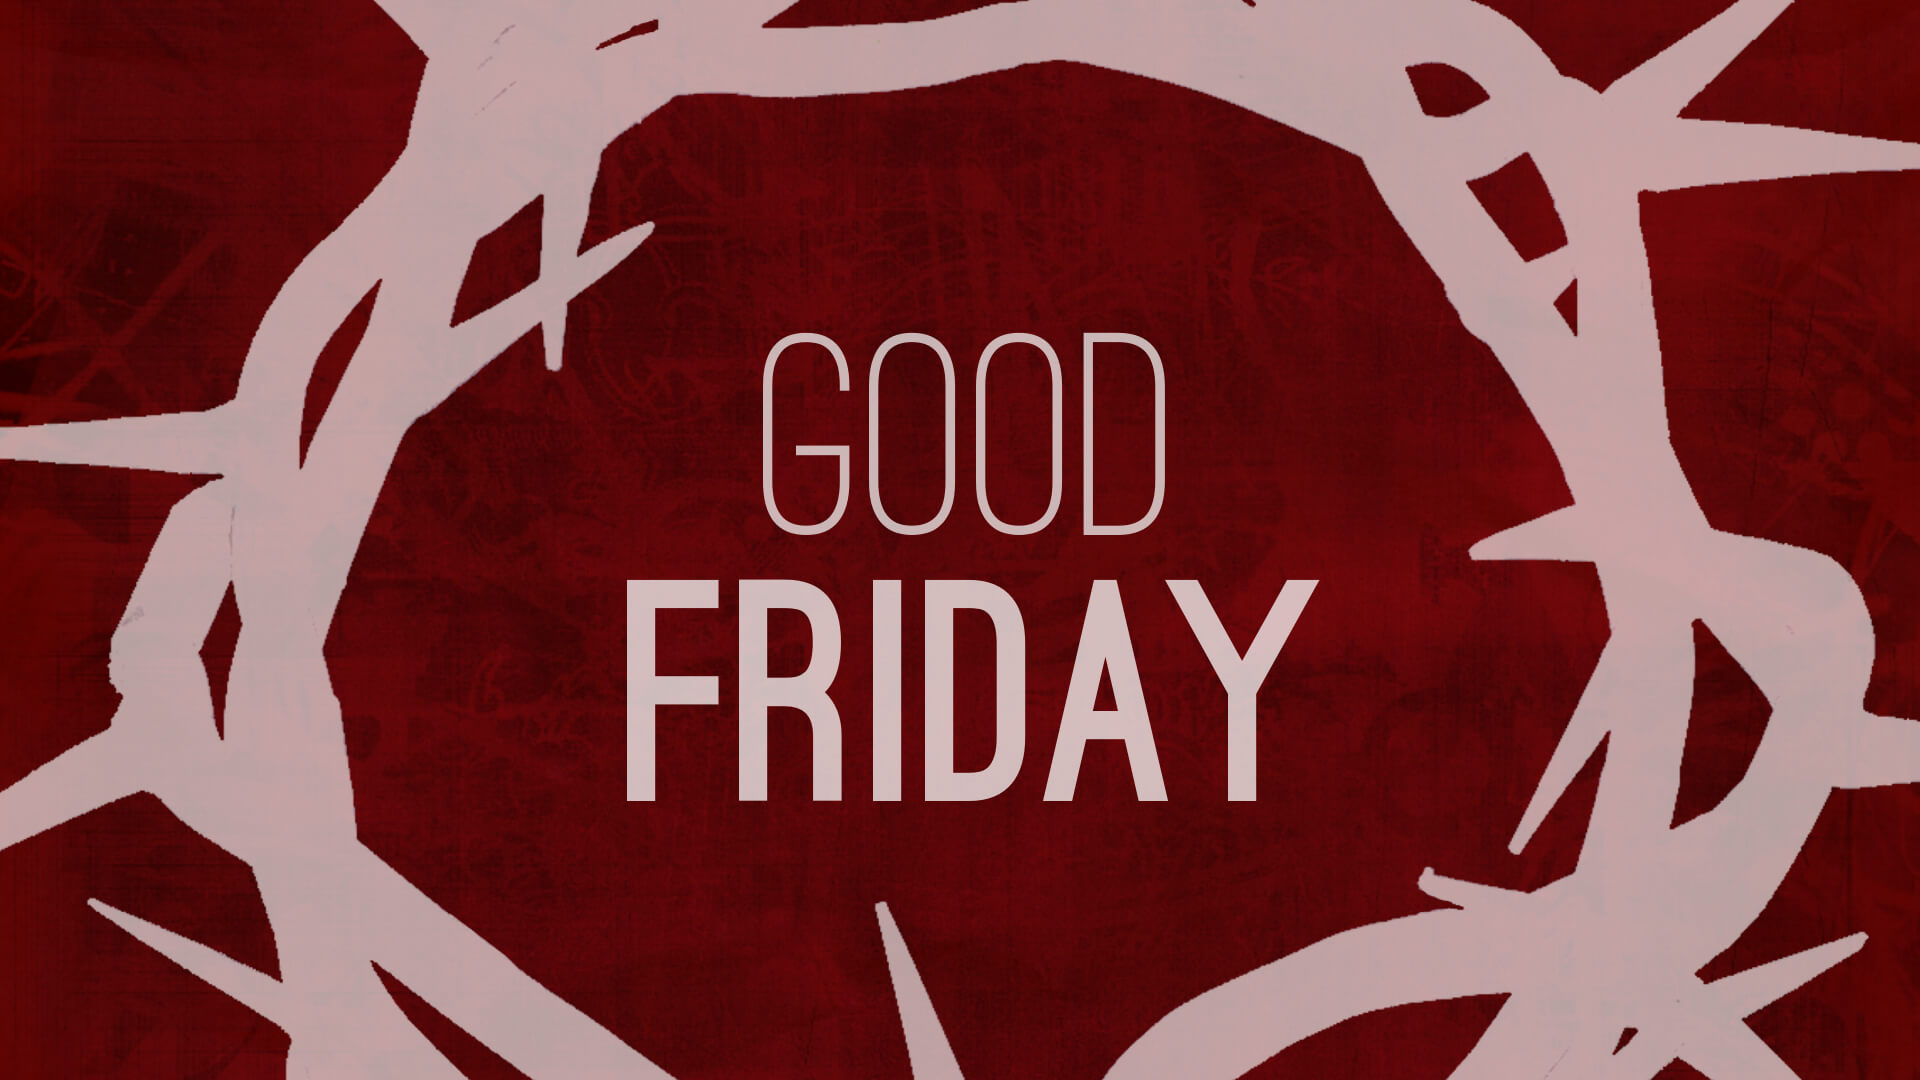 good friday thorn image wallpaper